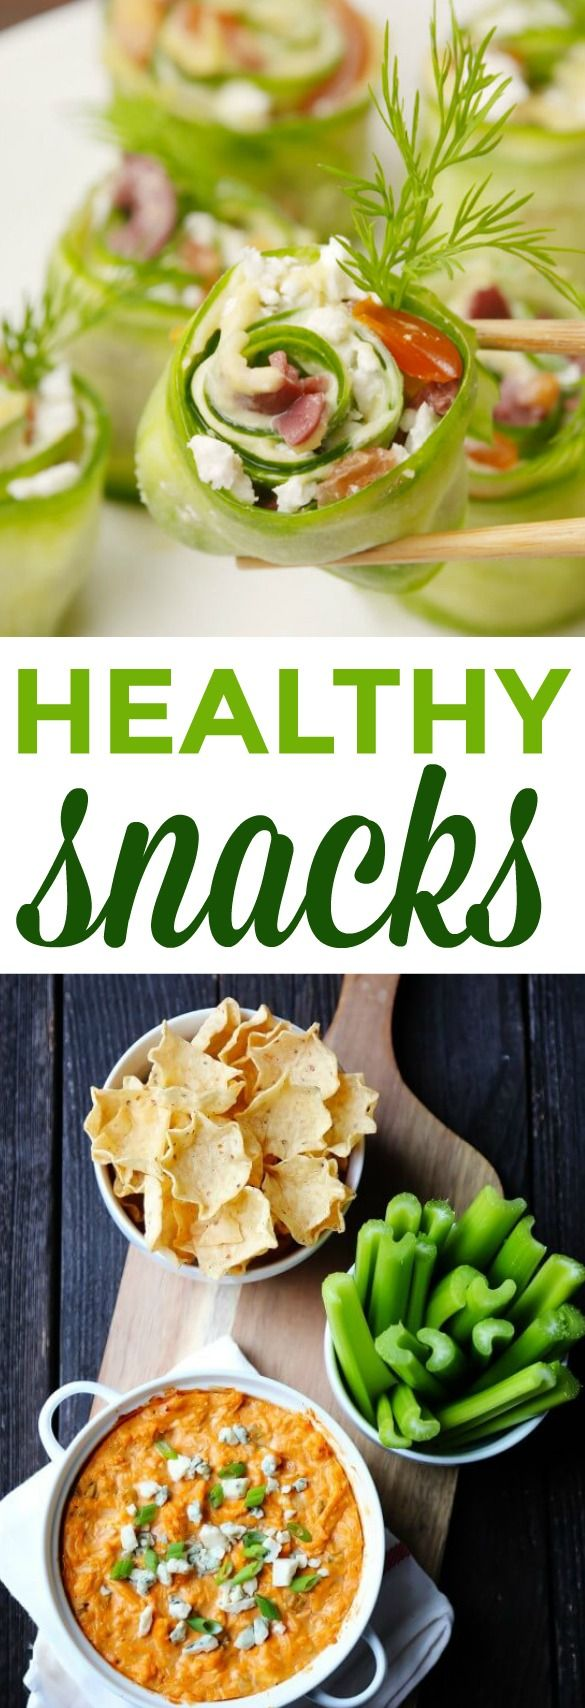 Today I want to show you this great roundup full of yummyHealthy Snacks that y...